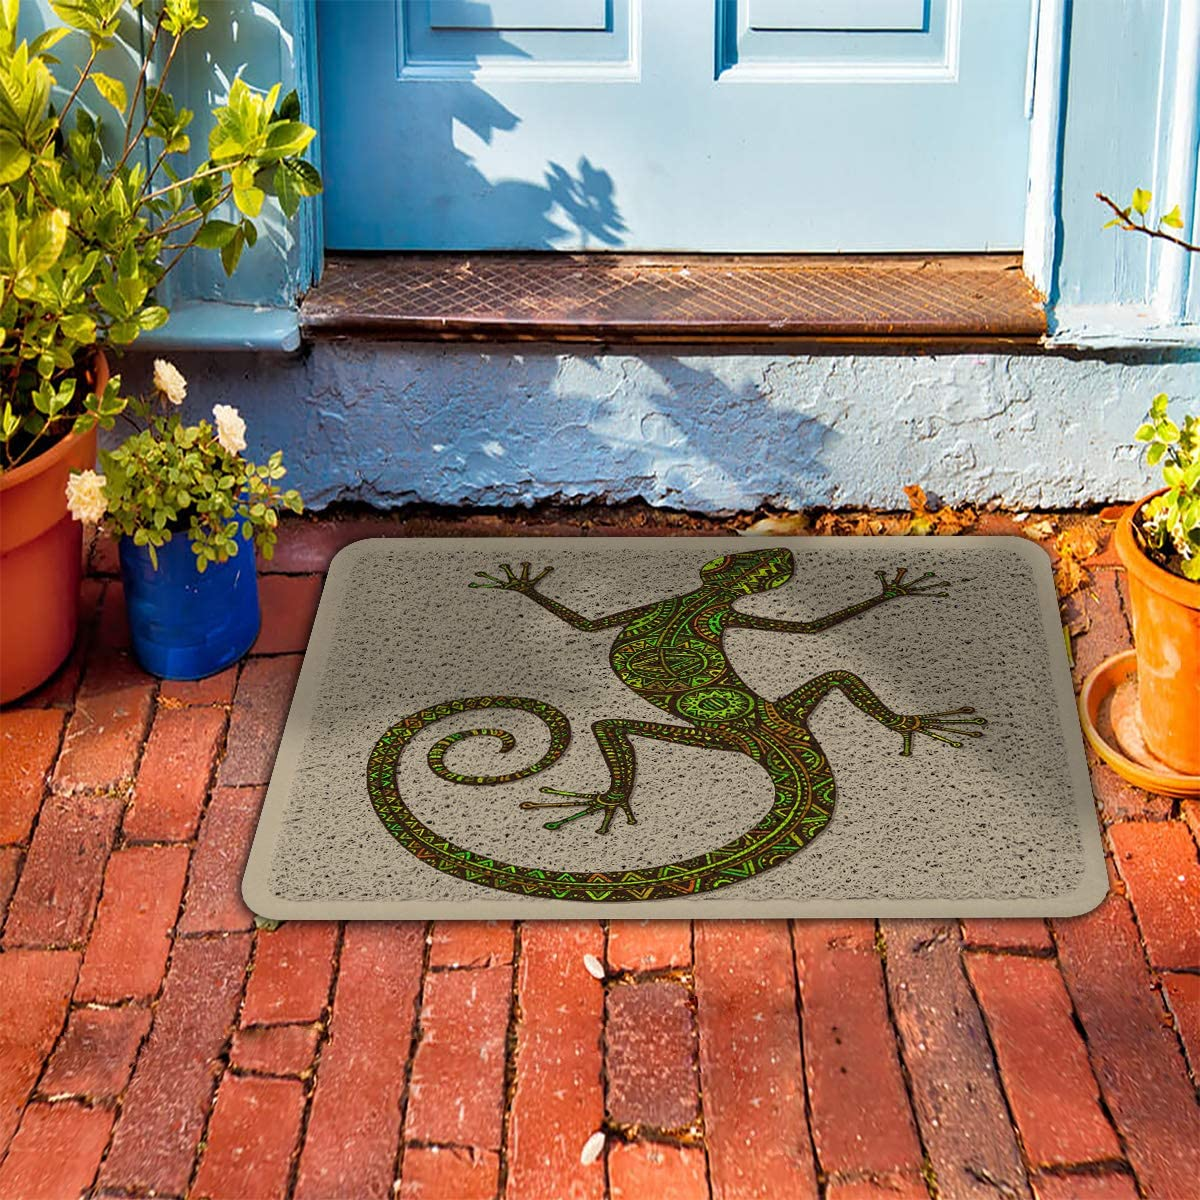 Fantasy Star Outdoor Indoor Entrance Doormat 24 x 36 , Floral Printed Gecko Front Welcome Door Mats Inside Outside Rugs, Waterproof Non Slip and Durable